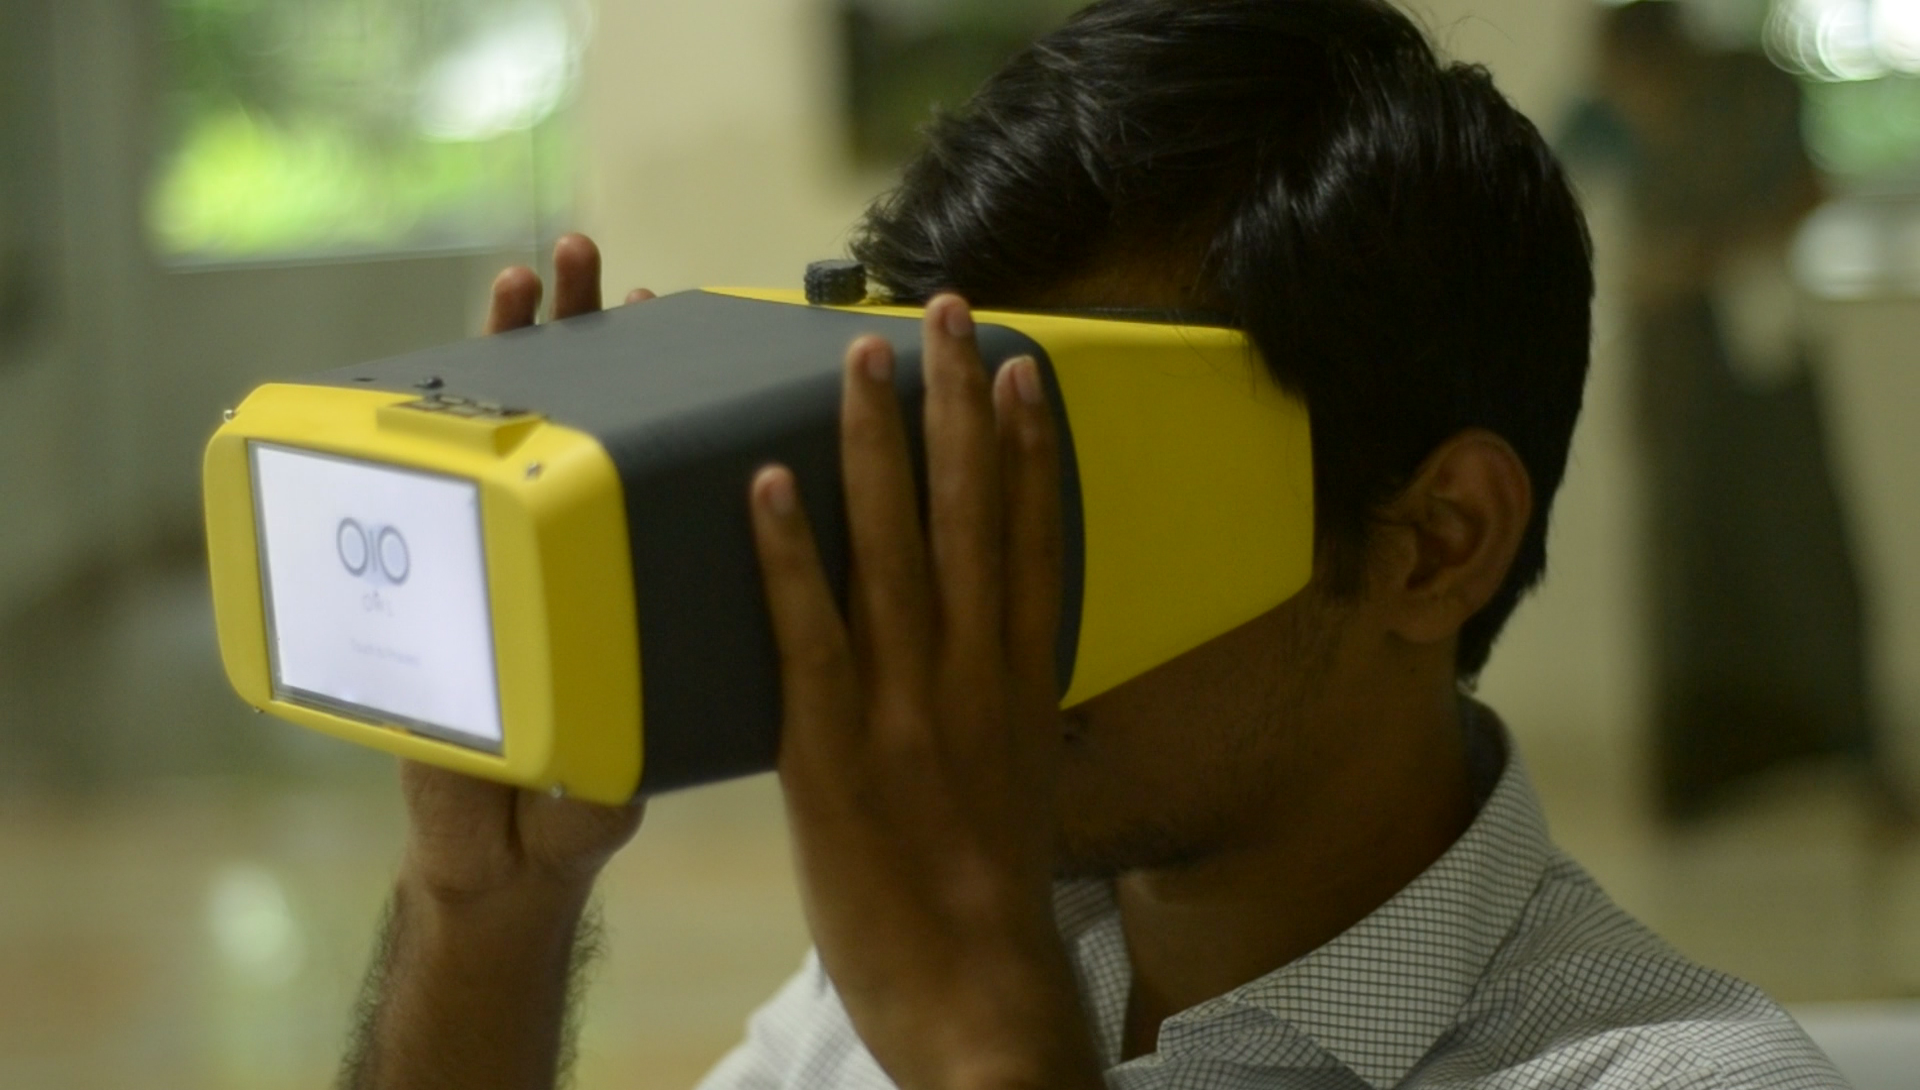 Ophthalmoscope: Saving eyes with Raspberry Pis